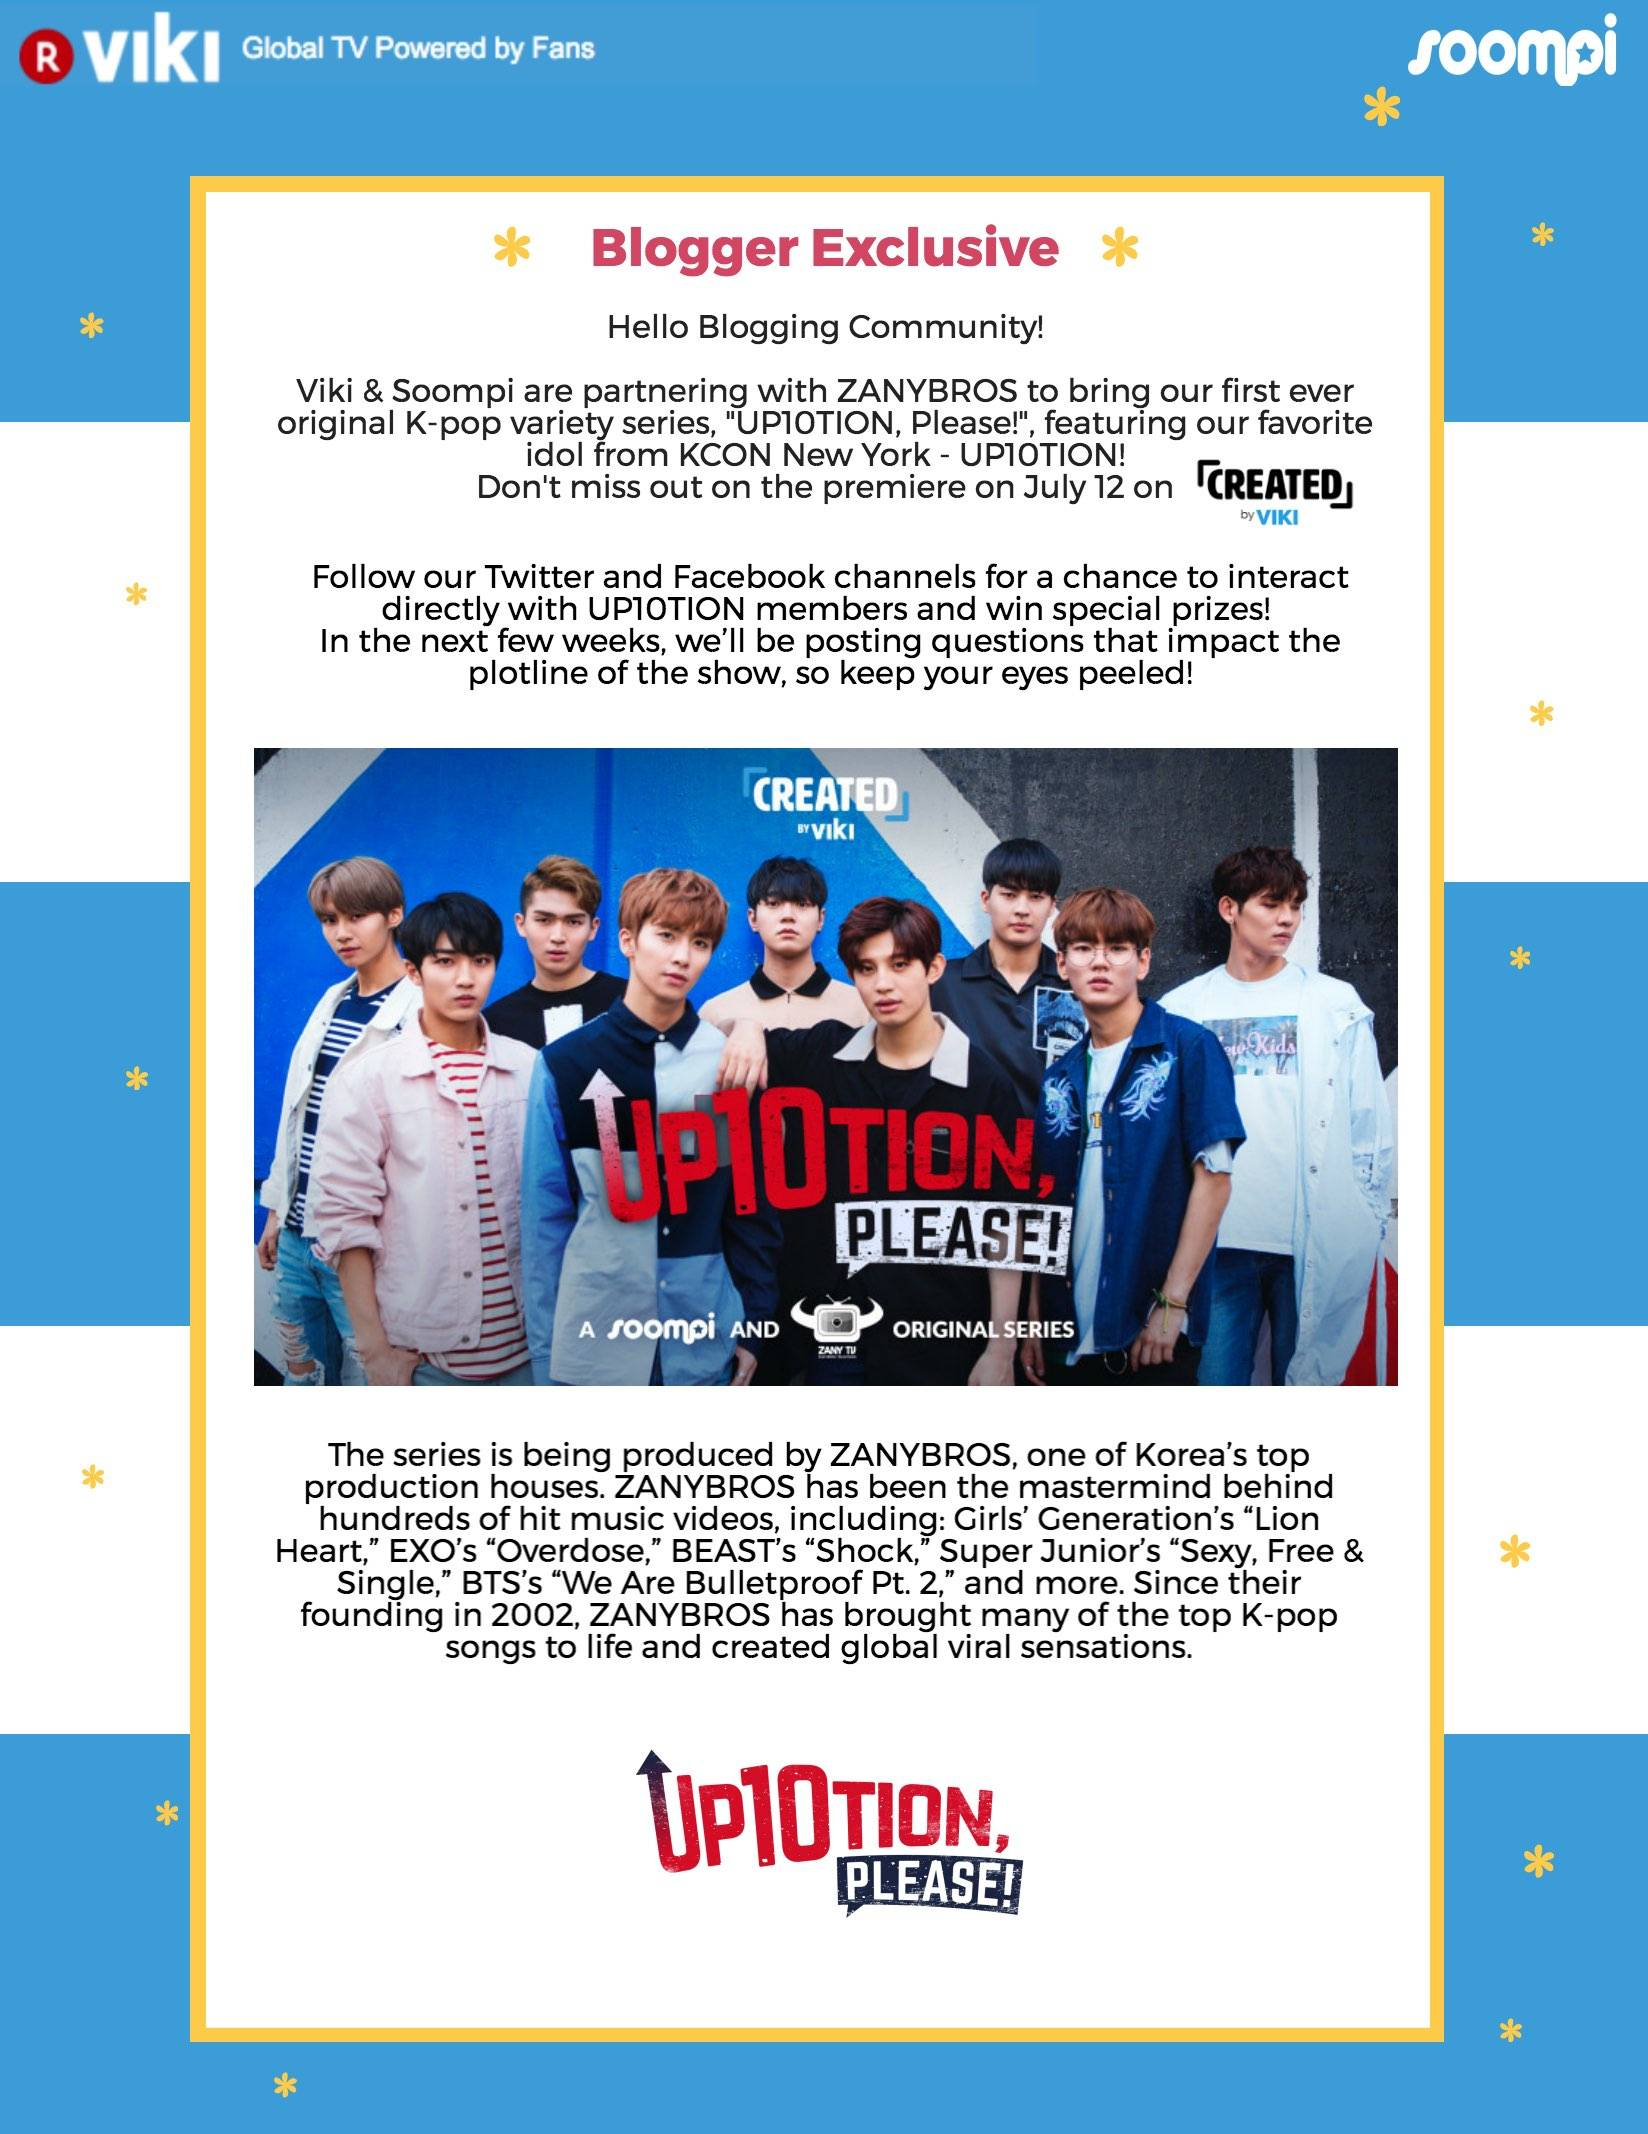 K-Pop Idol UP10TION Debuts in Original Variety Show on